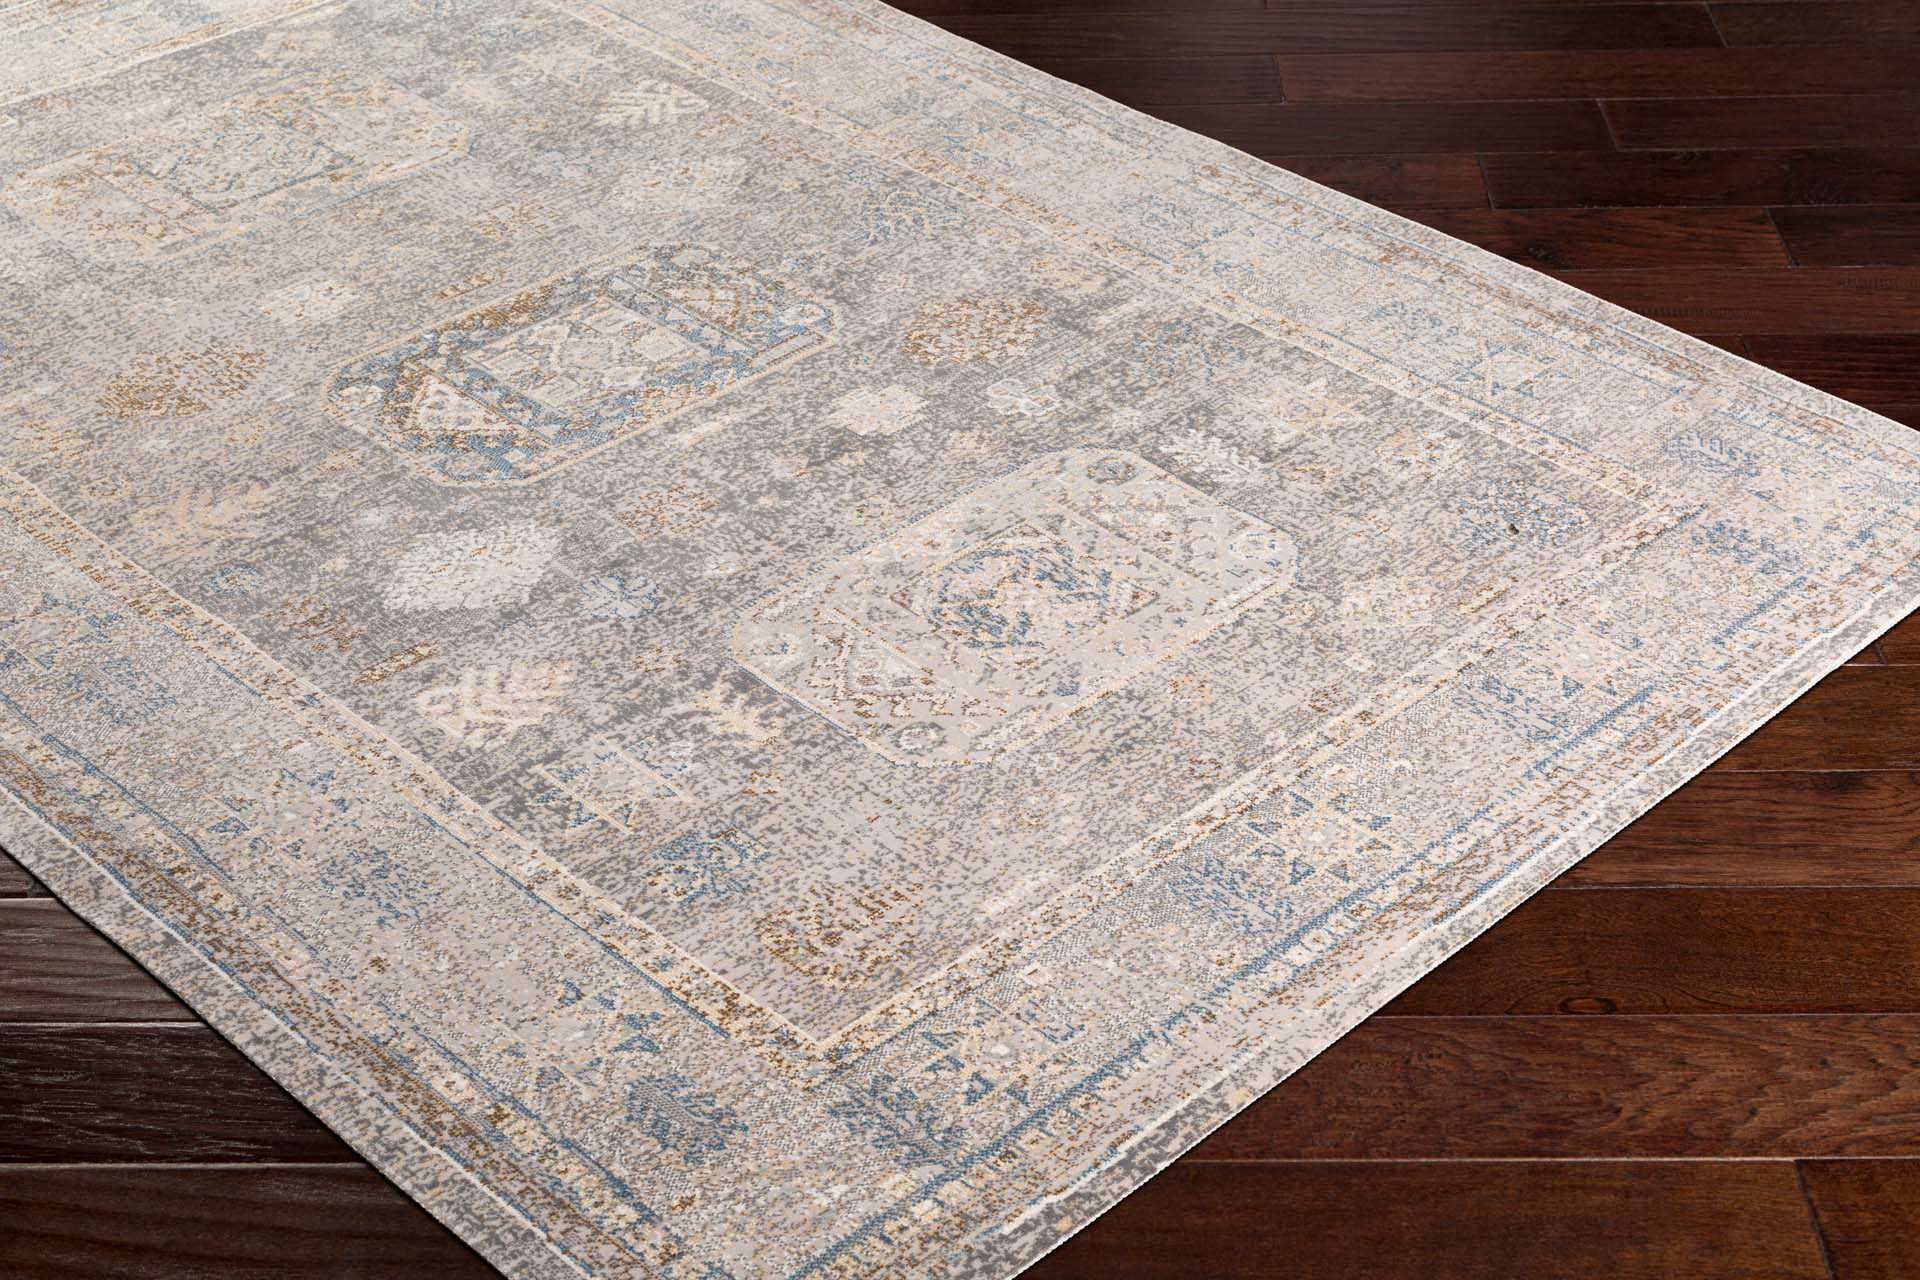 Neutral machine-made area rug from Israel with hints of beige, gray, blue and brown	on wood floor